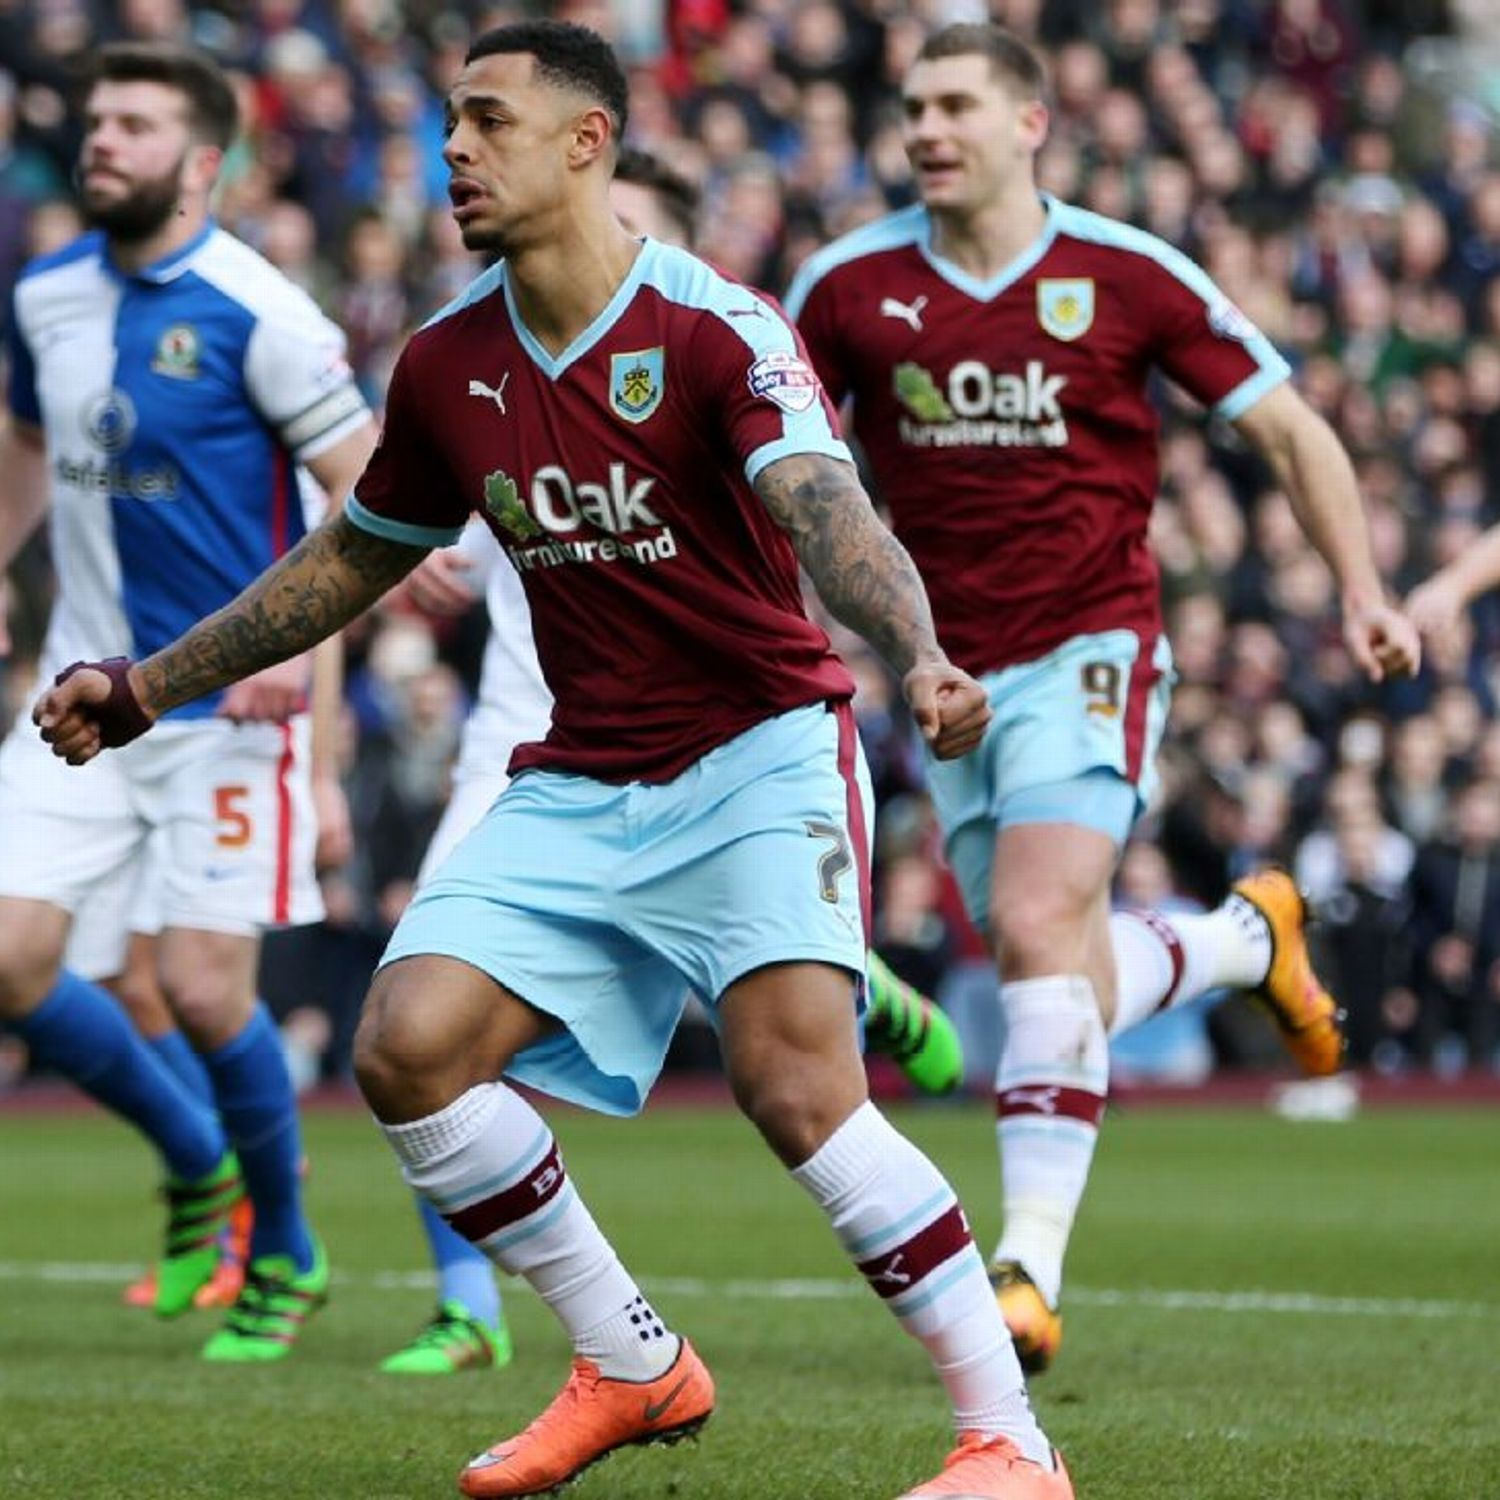 Andre Gray Could Be Next Vardy If Pre Season Form Carries Into New Season Burnley Sports Soccer Team